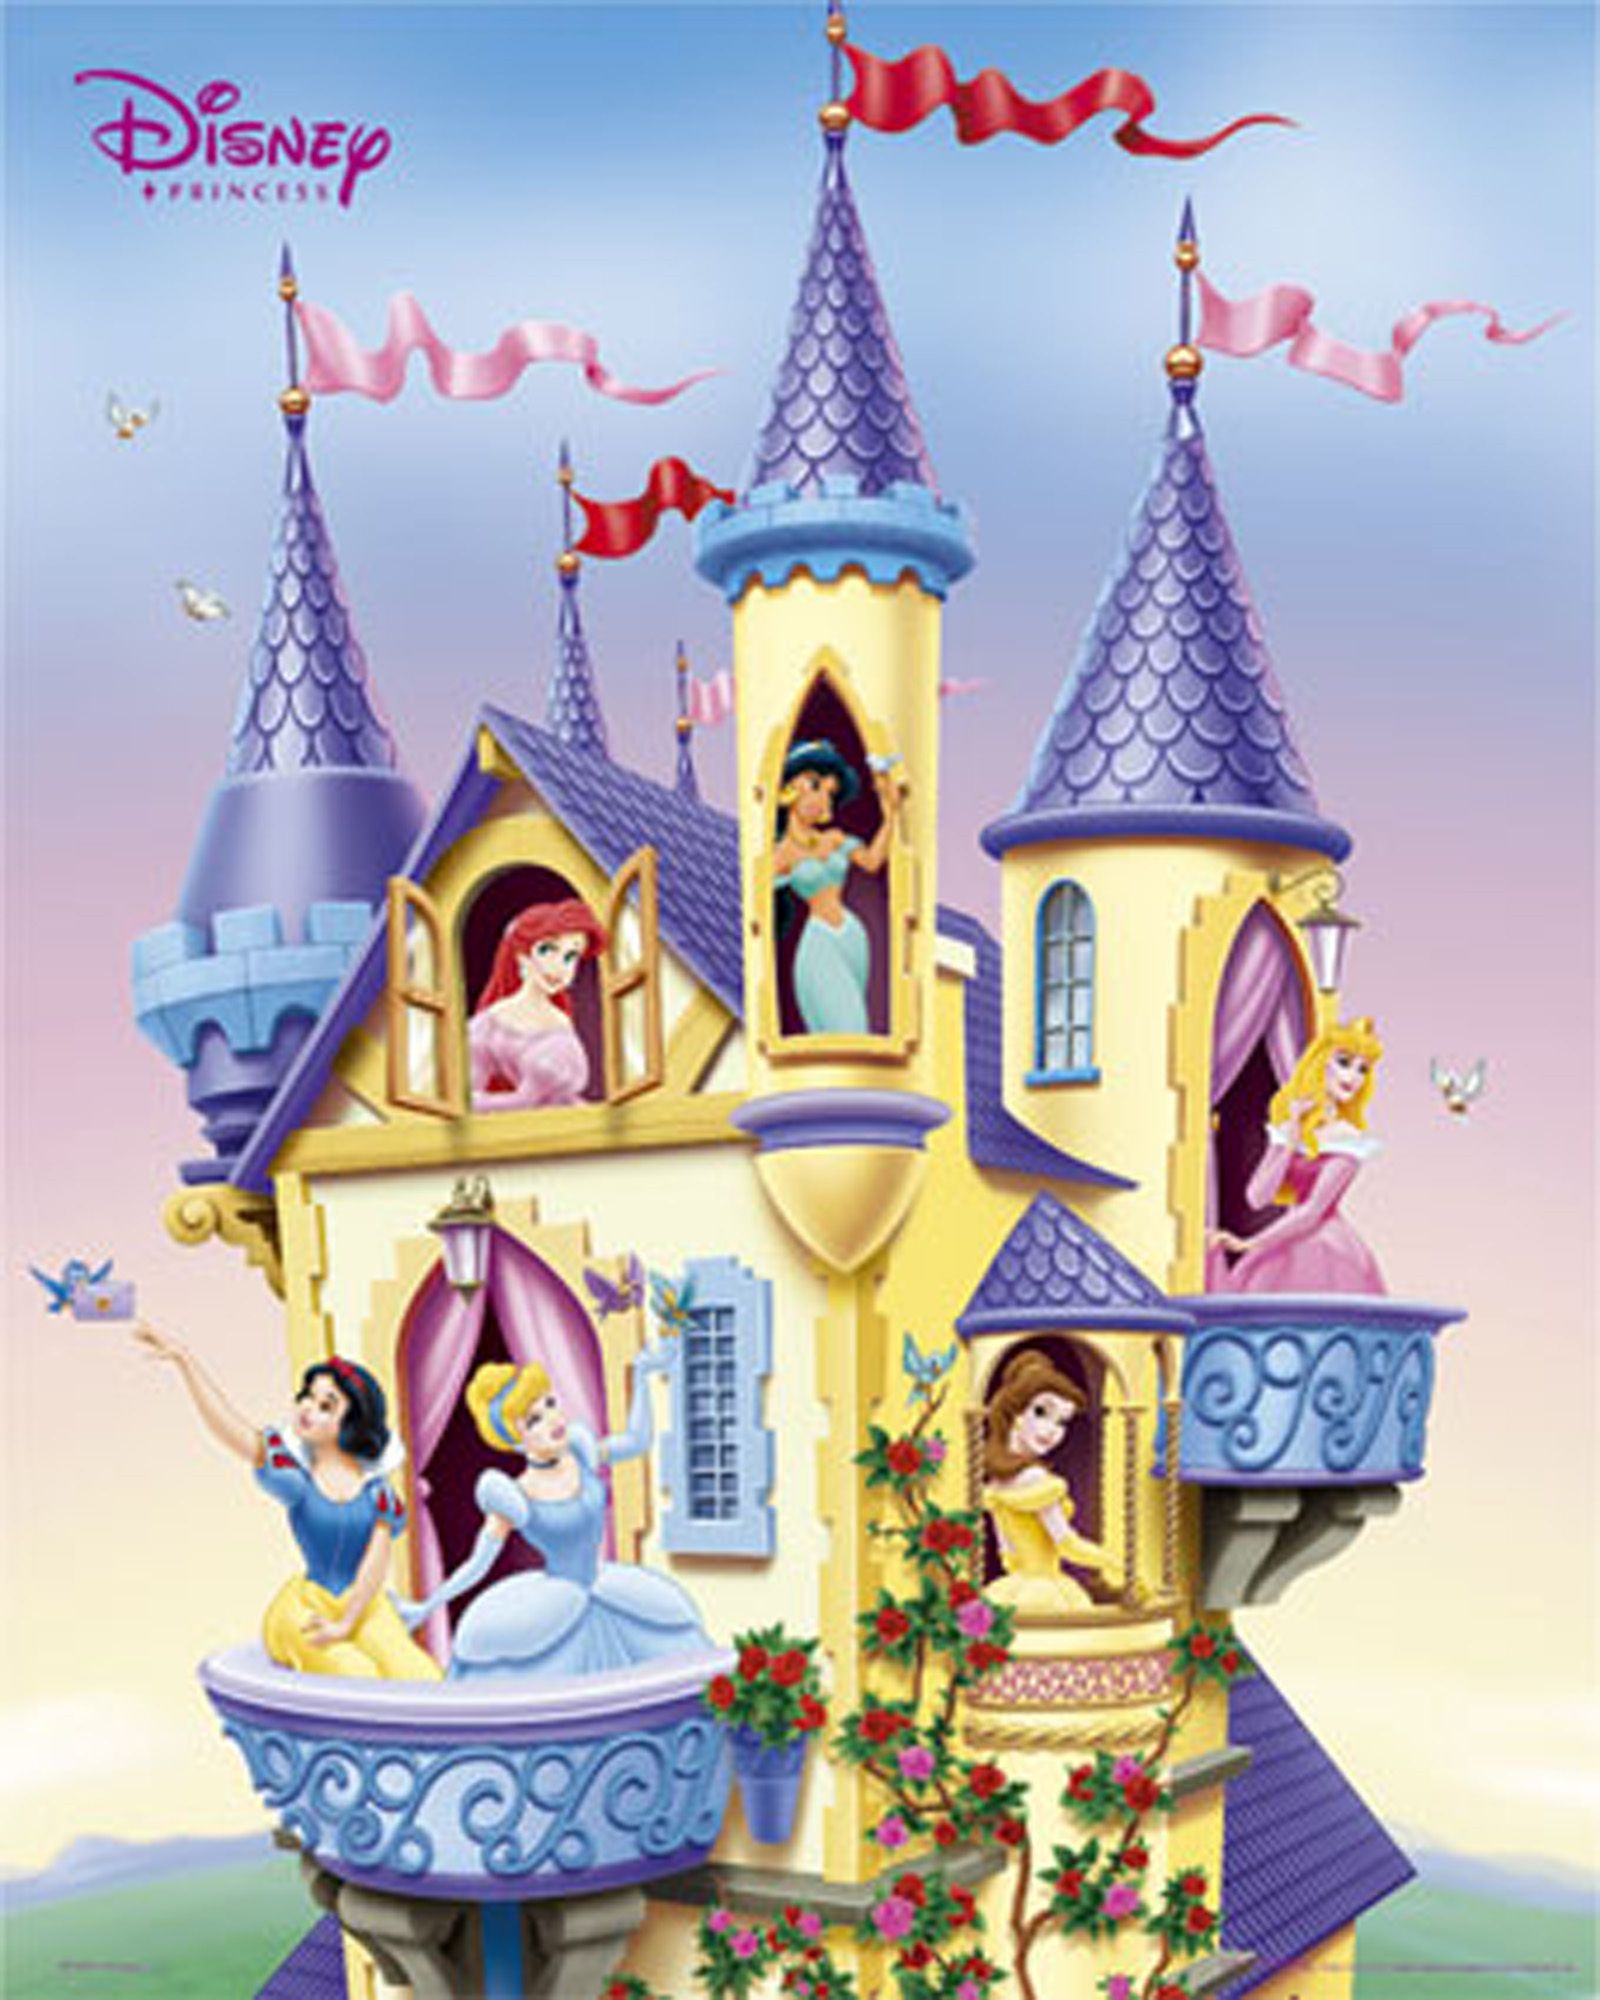 Disney com princess castle backgrounds disney princesses html code - Jpg 1600x2000 Disney Princess Castle Cartoon Background